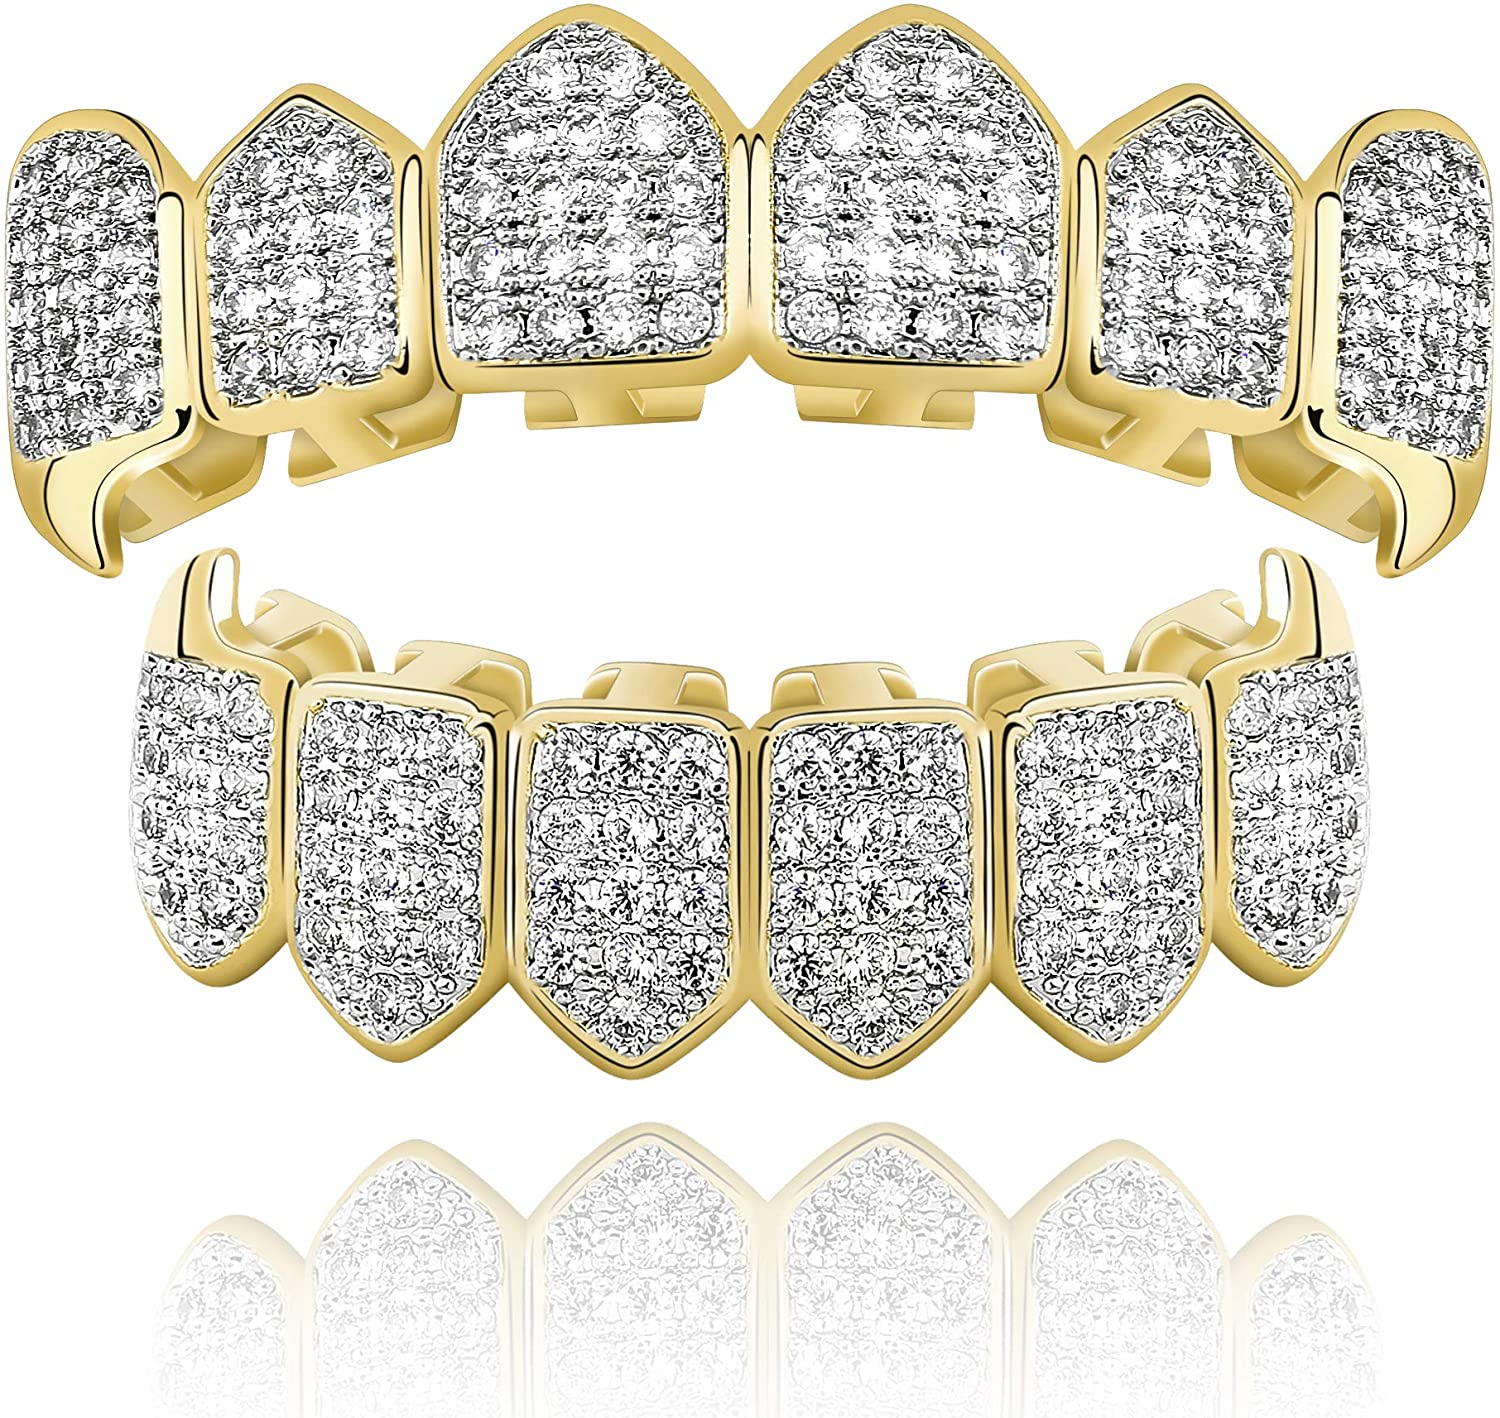 Vampire ZIRKONIA Gold silv Iced Out One Size fits All Bottom Grillz